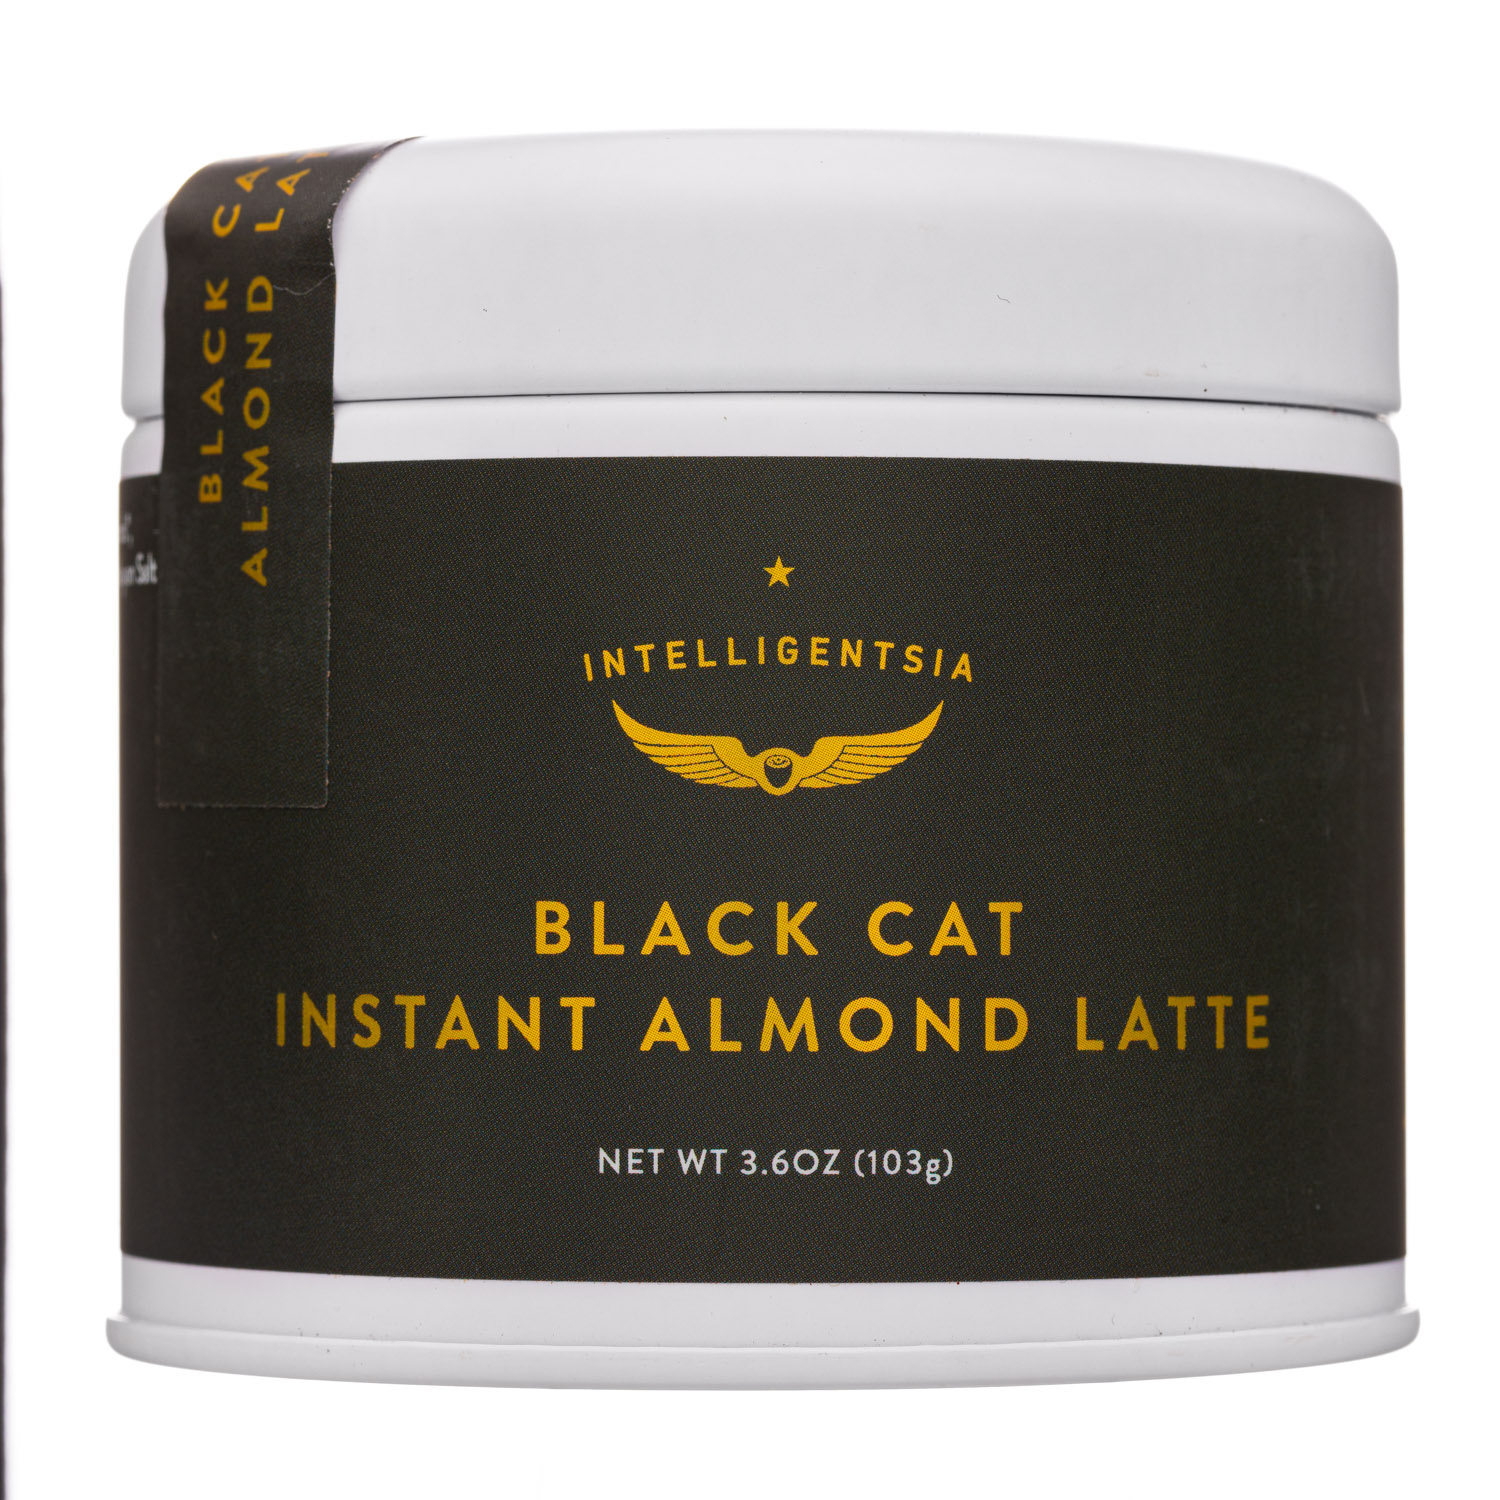 Black Cat Instant Almond Latte